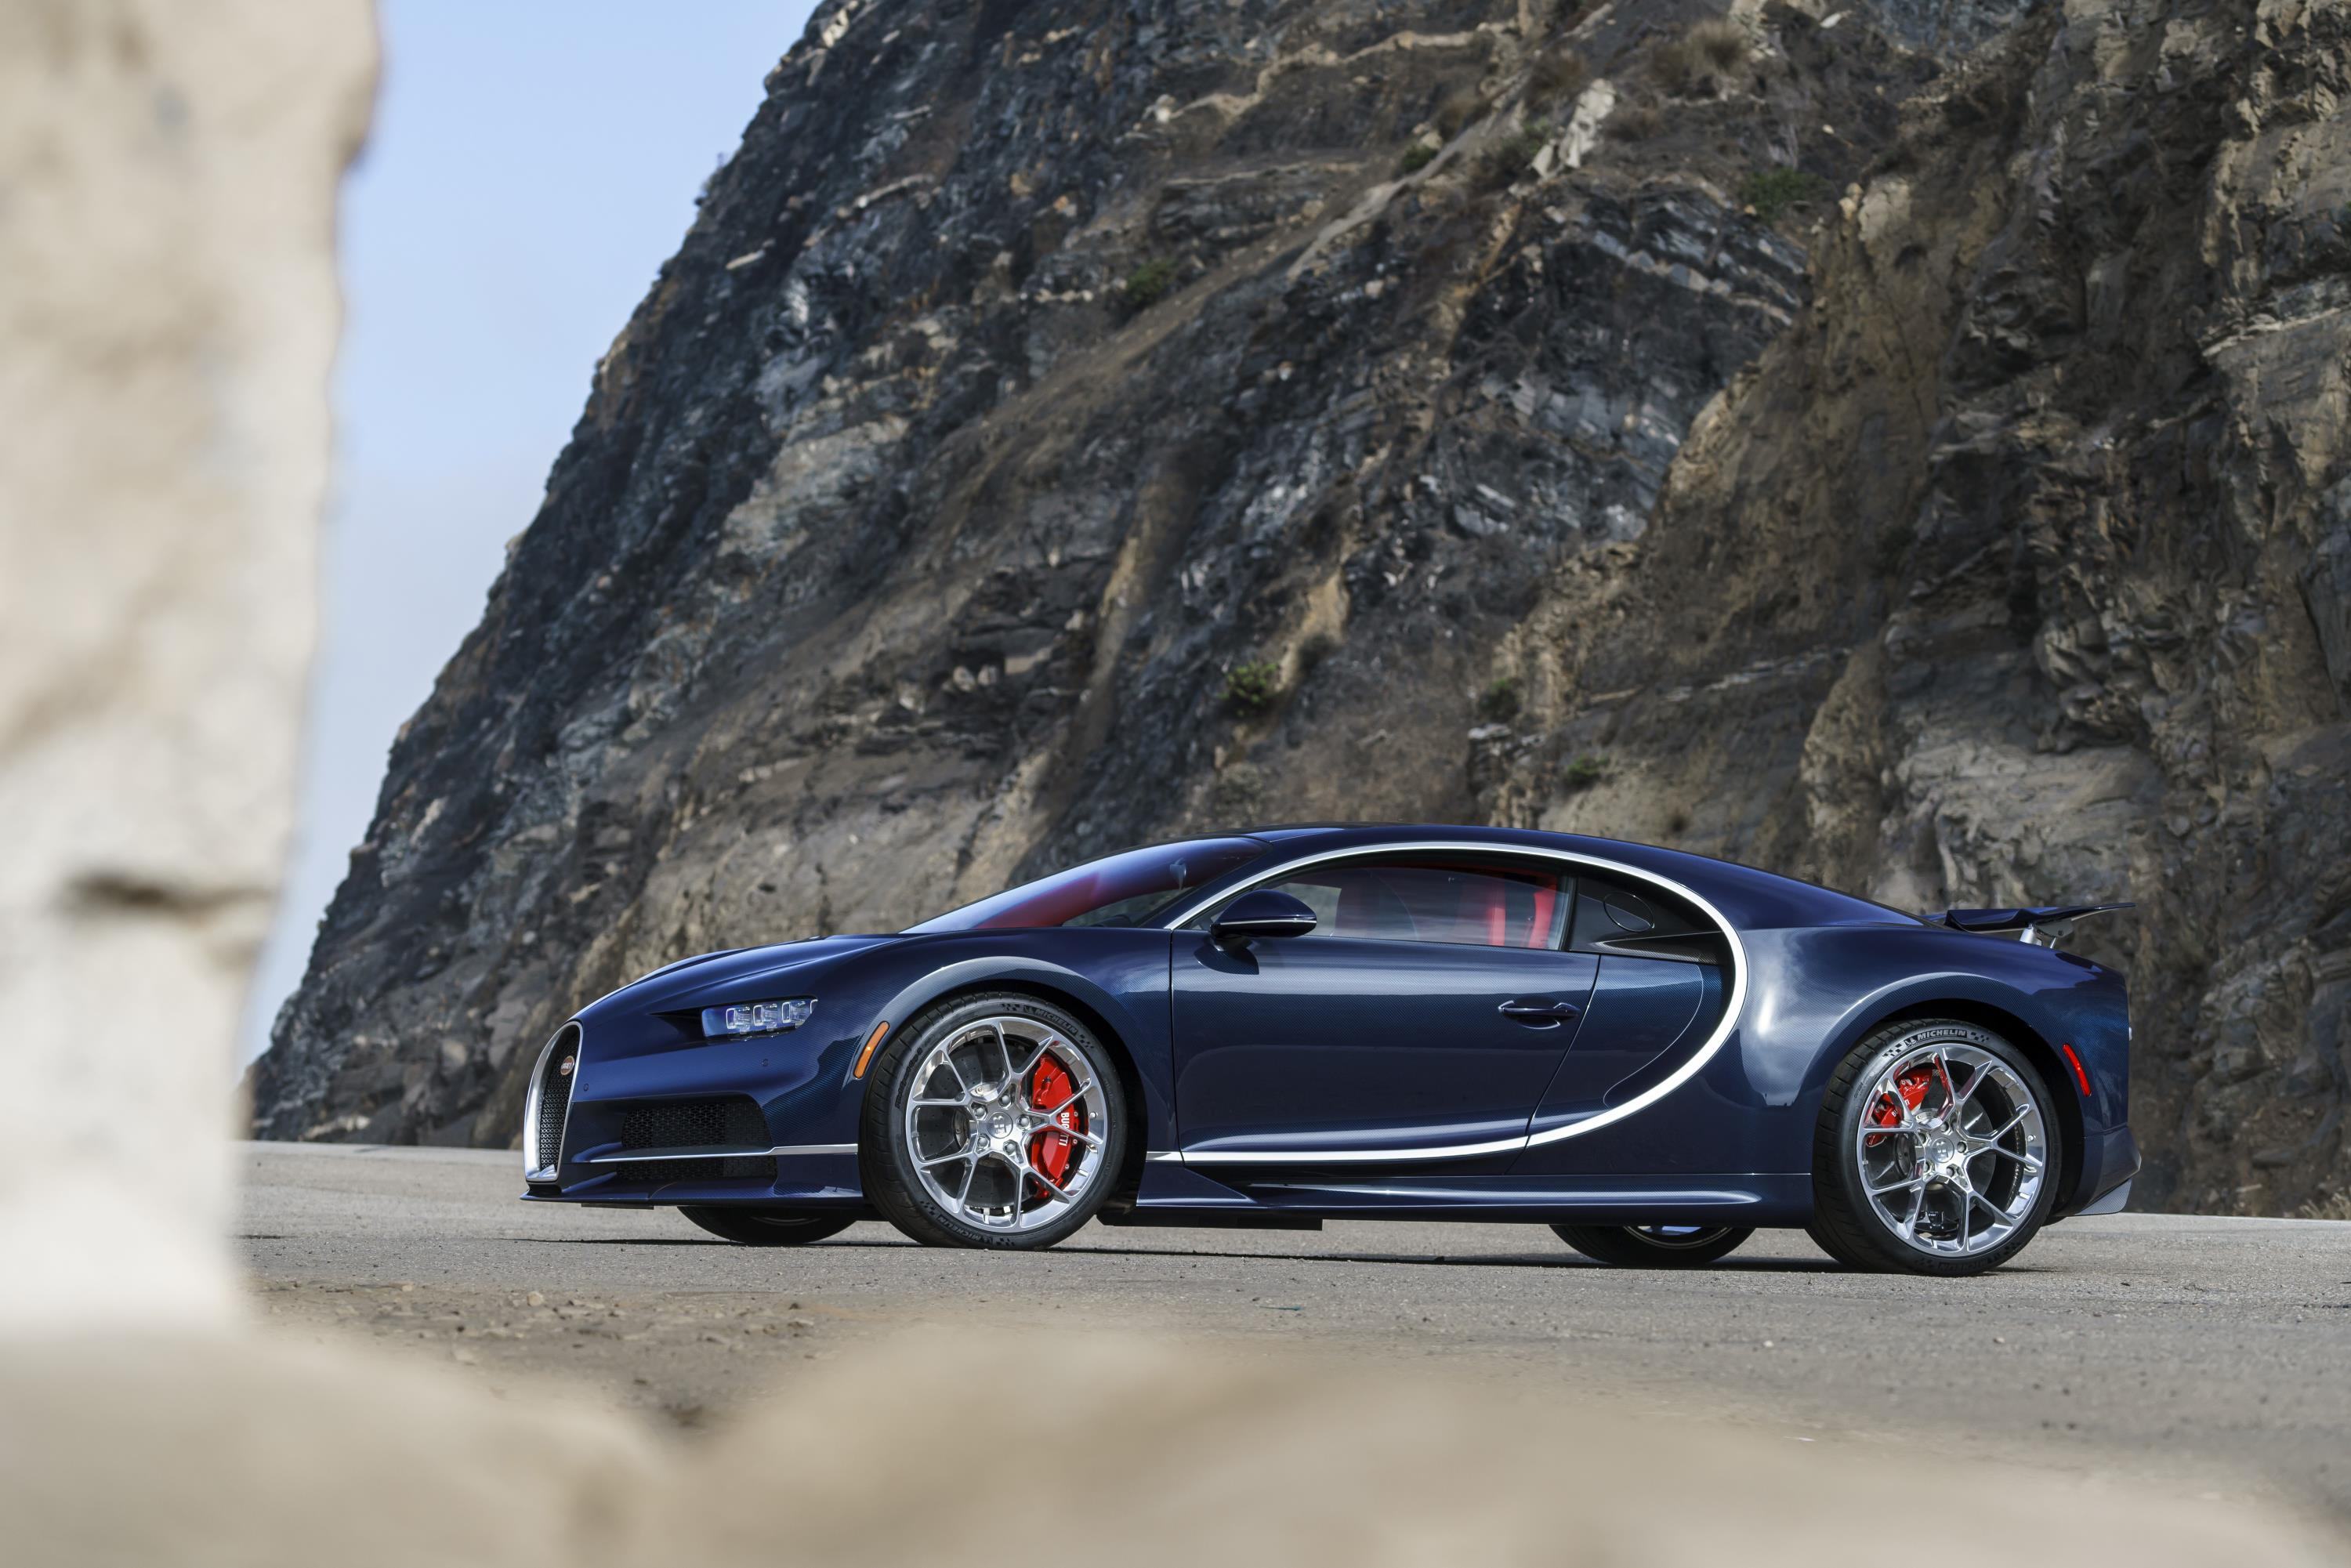 Bugatti may wait until Chiron replacement to introduce hybrid tech